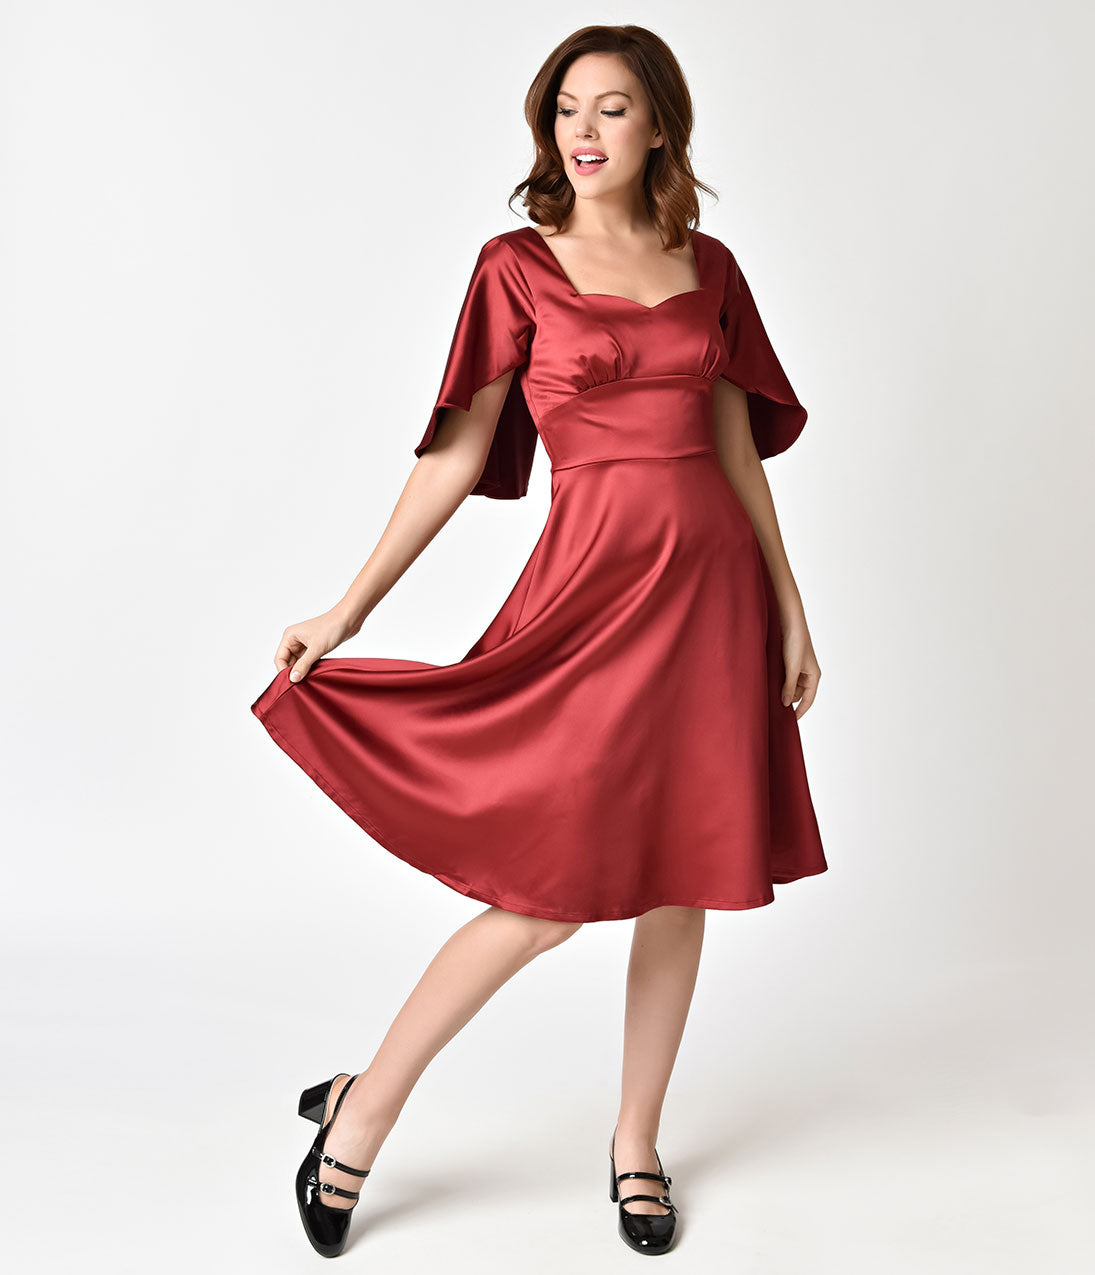 1940s Evening, Prom, Party, Cocktail Dresses & Ball Gowns Voodoo Vixen 1940s Burgundy Red Satin Mariah Cape Dress $60.00 AT vintagedancer.com